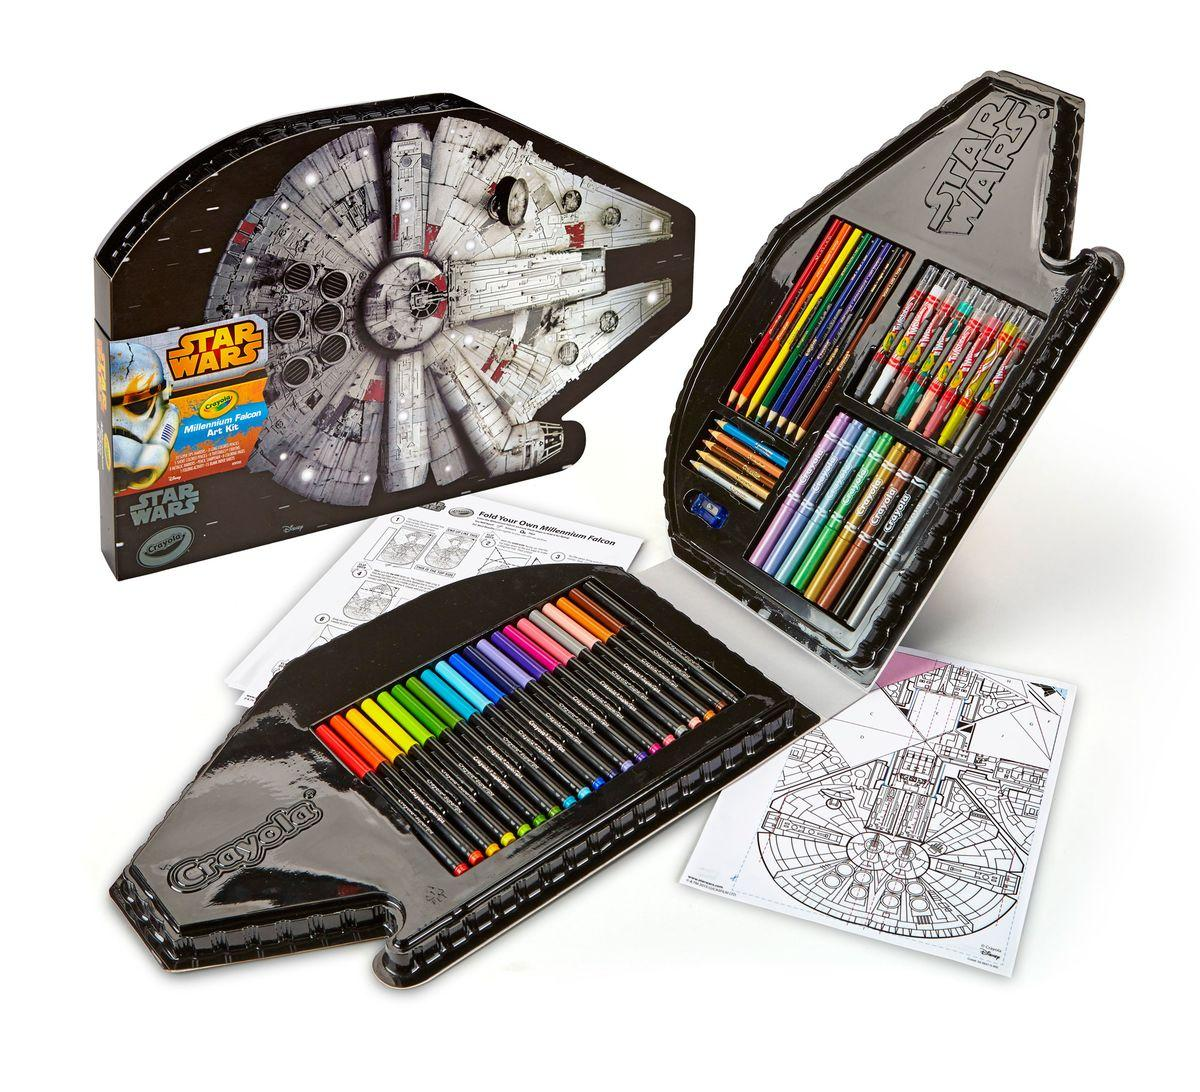 $10.69 Crayola 04-6847 Millennium Falcon Art Case Toy